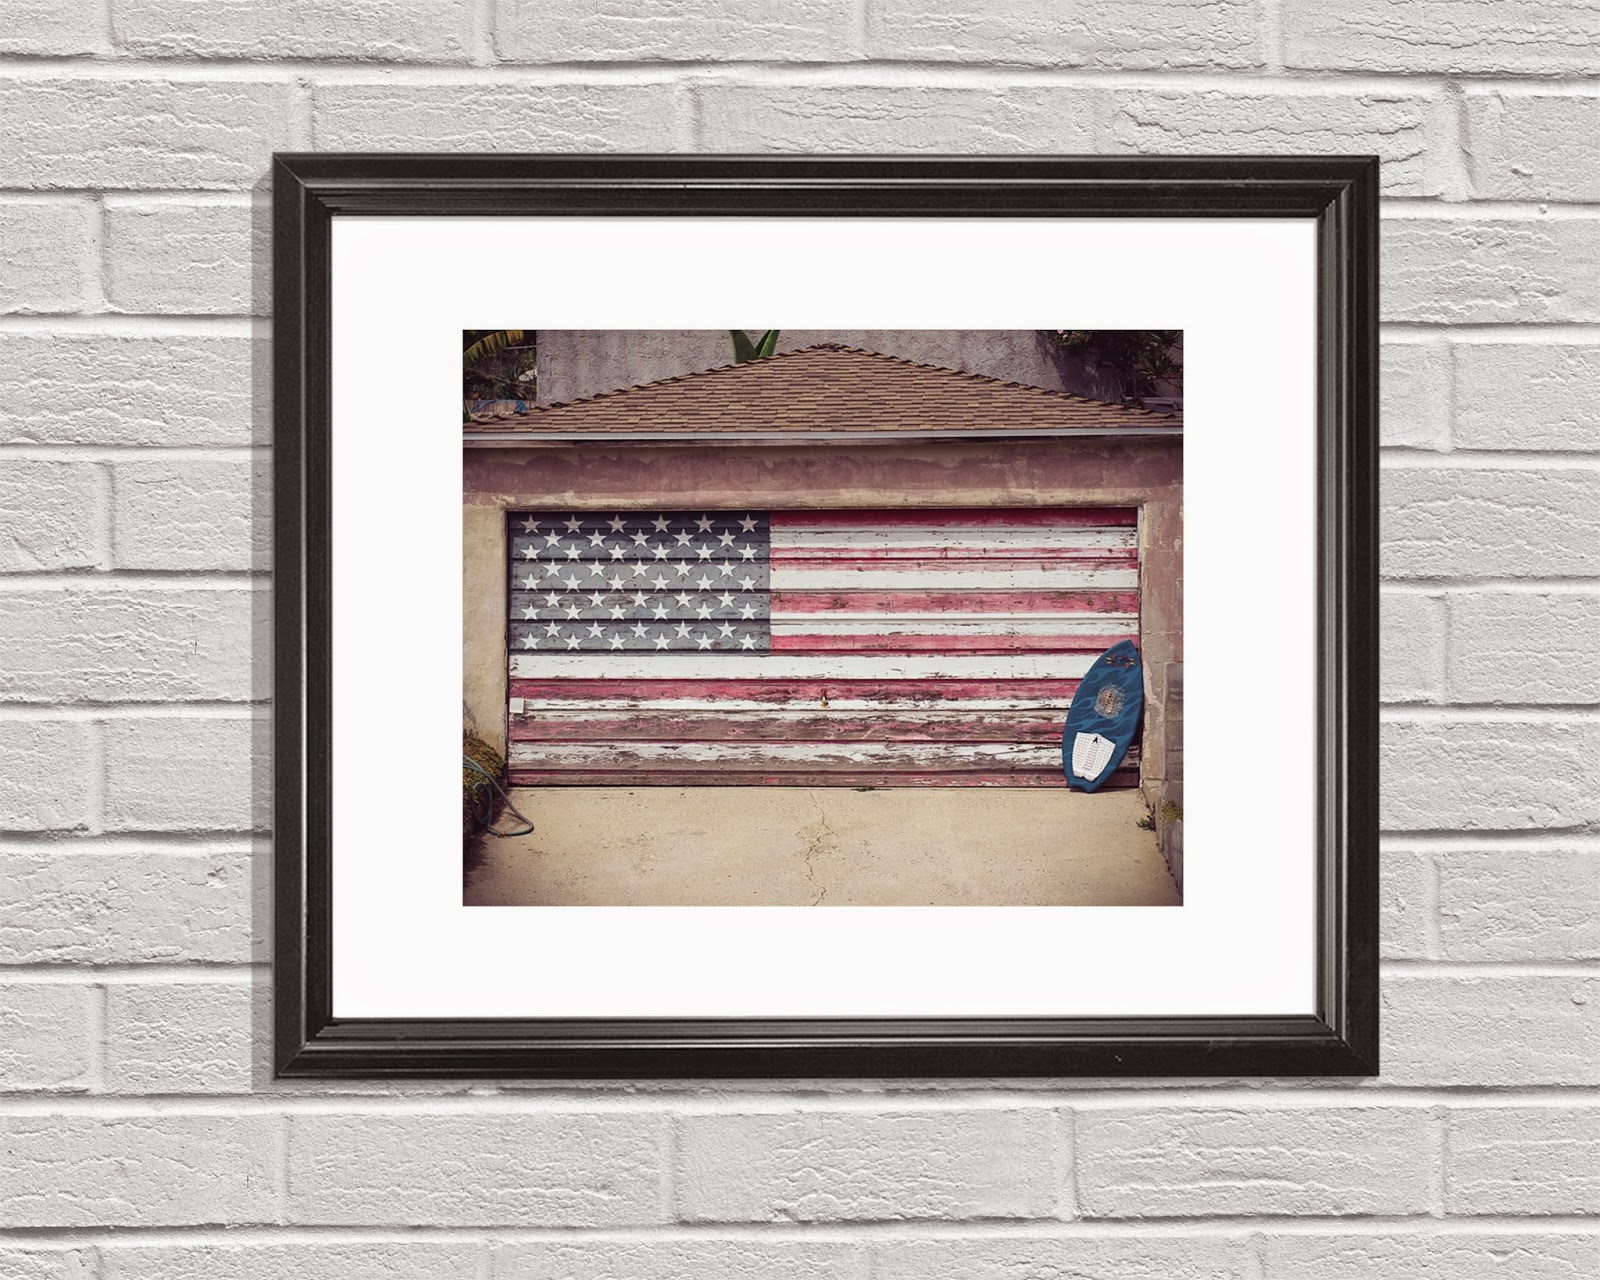 Vintage American Flag Print, Americana Photography, Pacific Coast Highway Malibu, California Wall Art